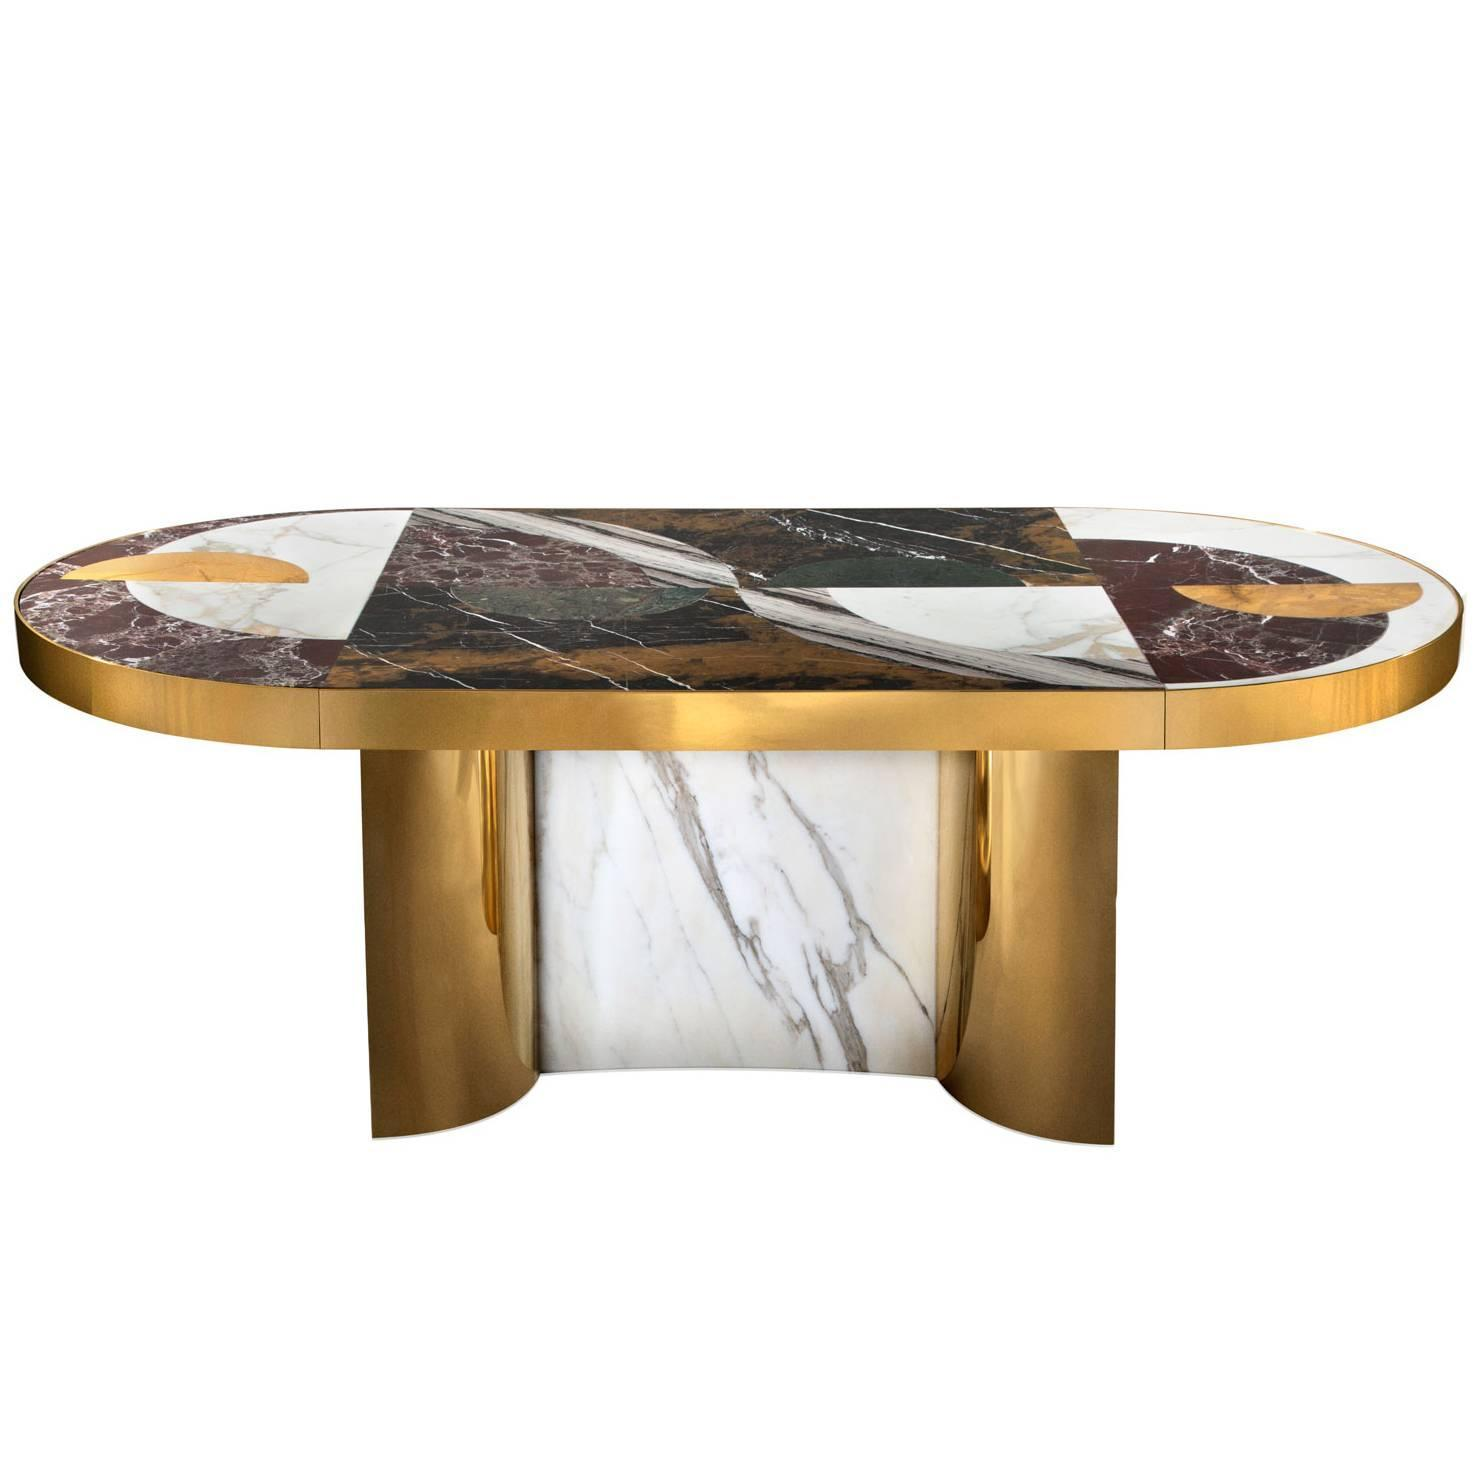 Marble Dining Room Tables 281 For Sale at 1stdibs